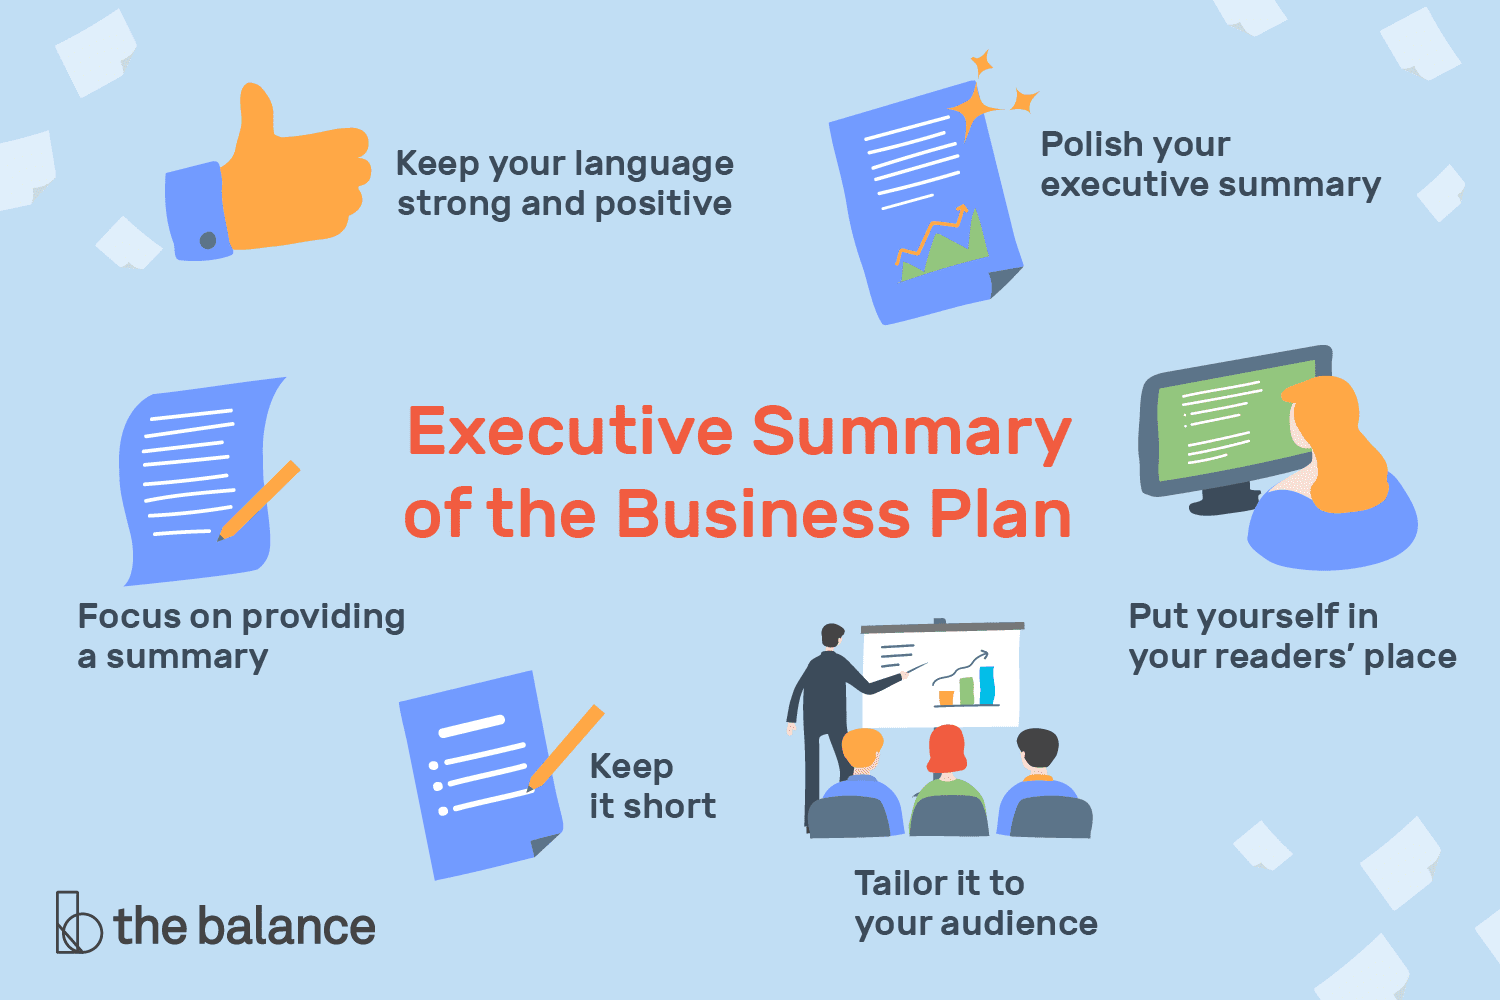 Executive summary of the business plan tips for writing the business plans executive summary accmission Image collections